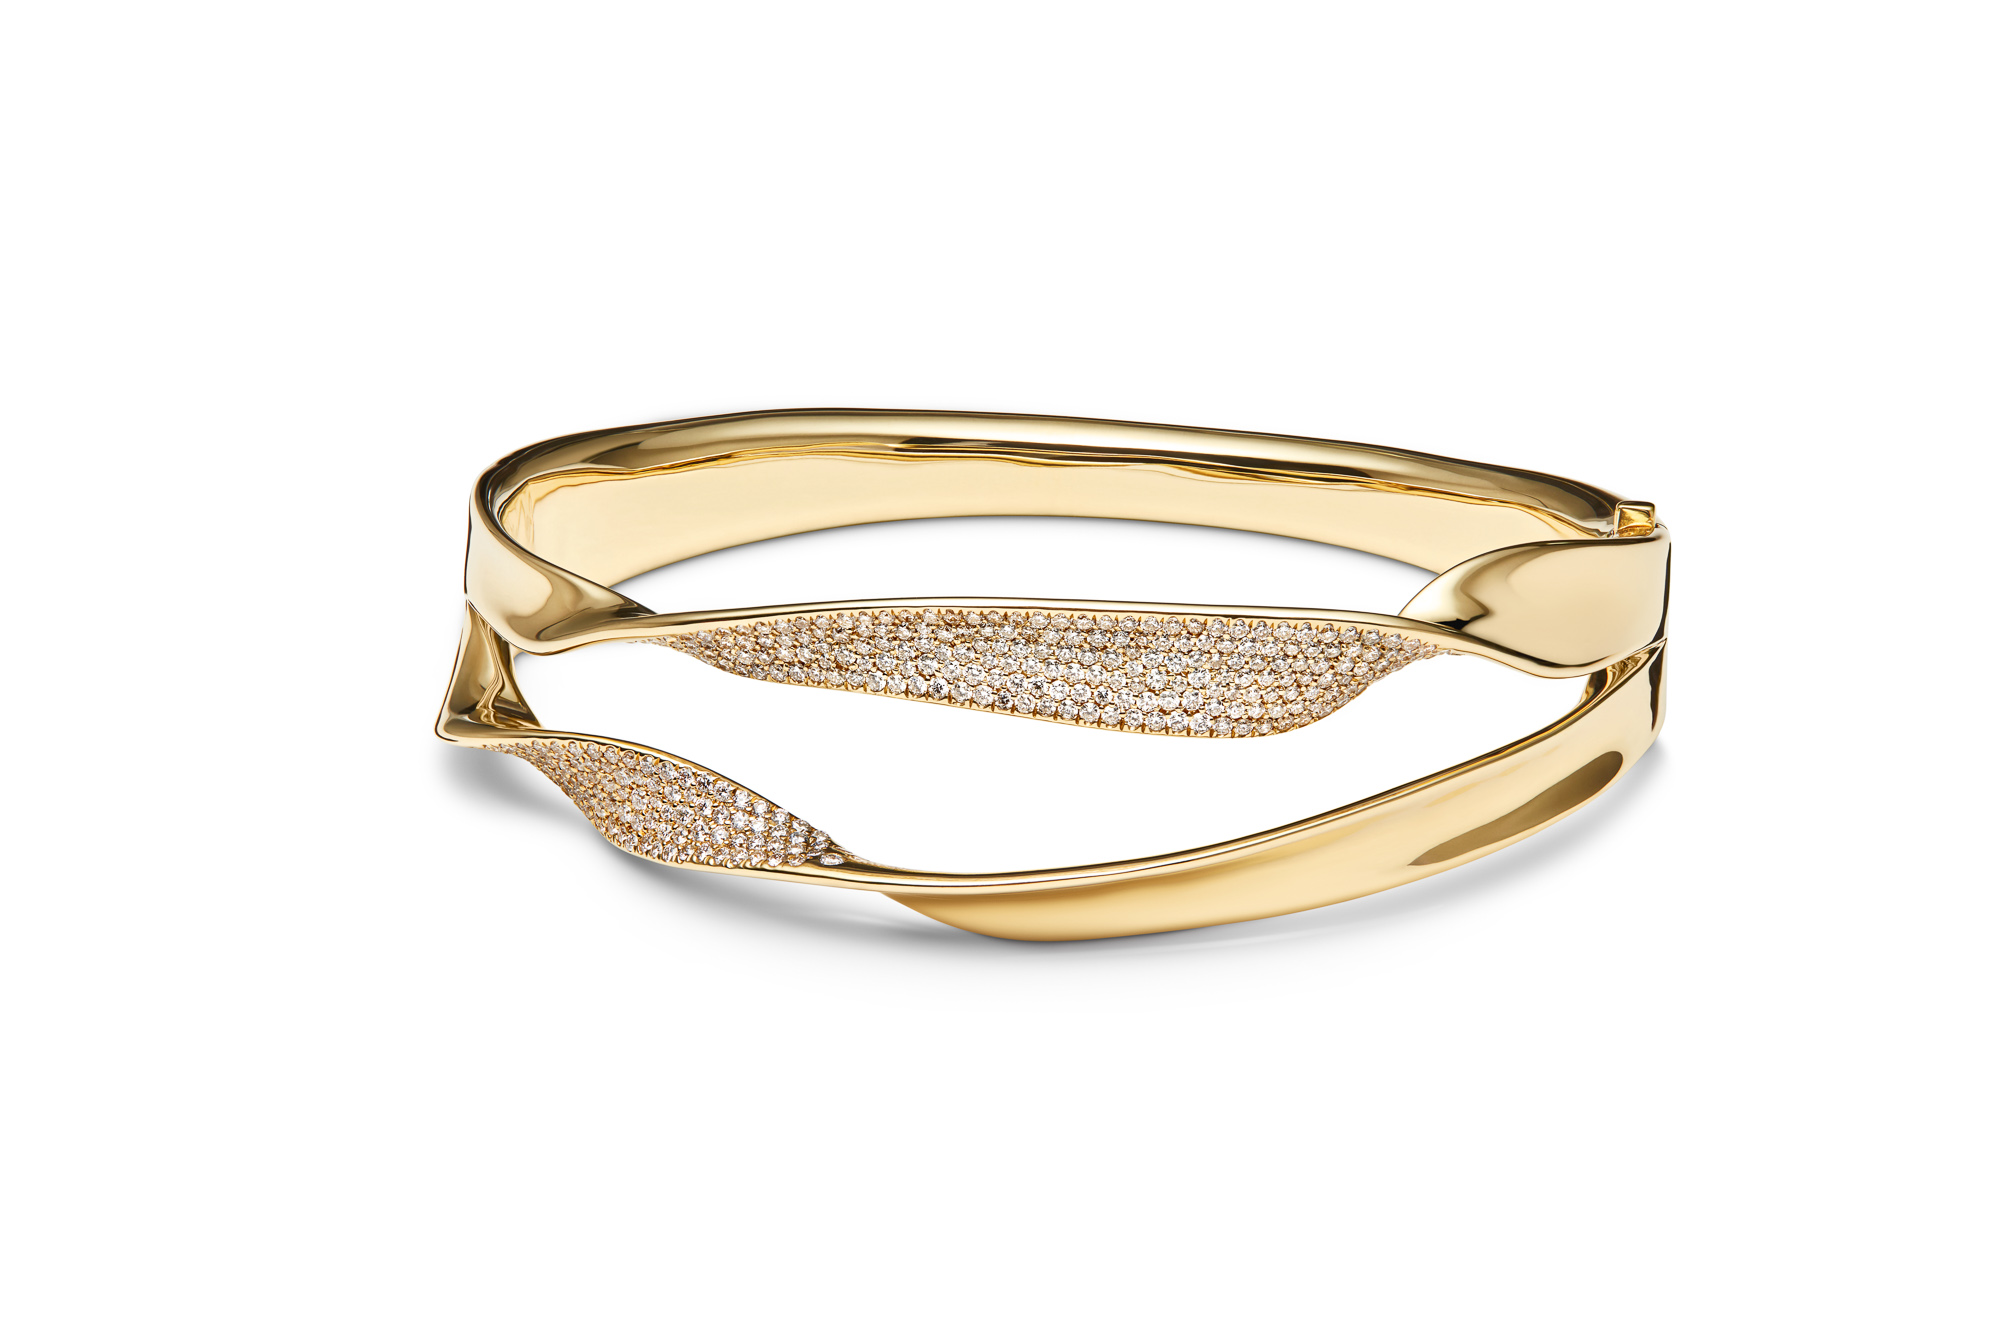 2018_02_20_Ippolita_Gold Bracelet with Diamonds 001_R3.jpg